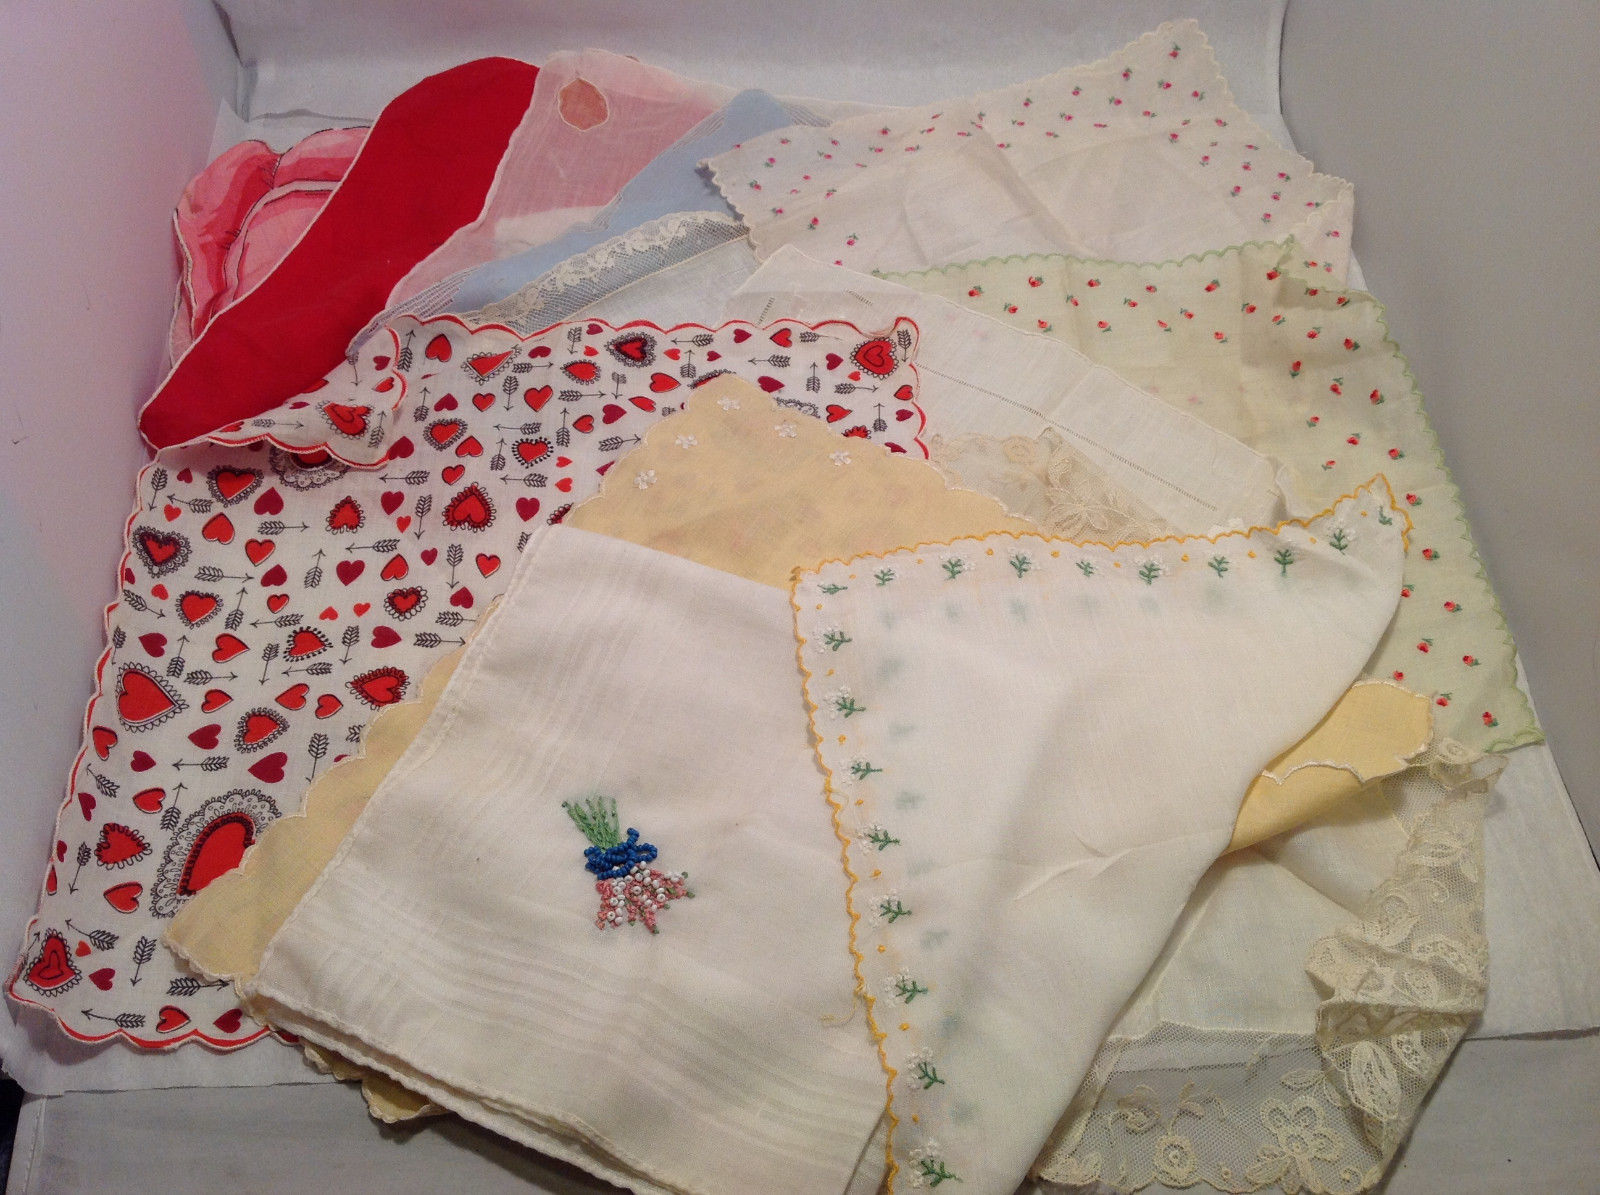 13 Handkerchiefs Lot Colorful Variety Assortment w/ Embroidered or Print Details